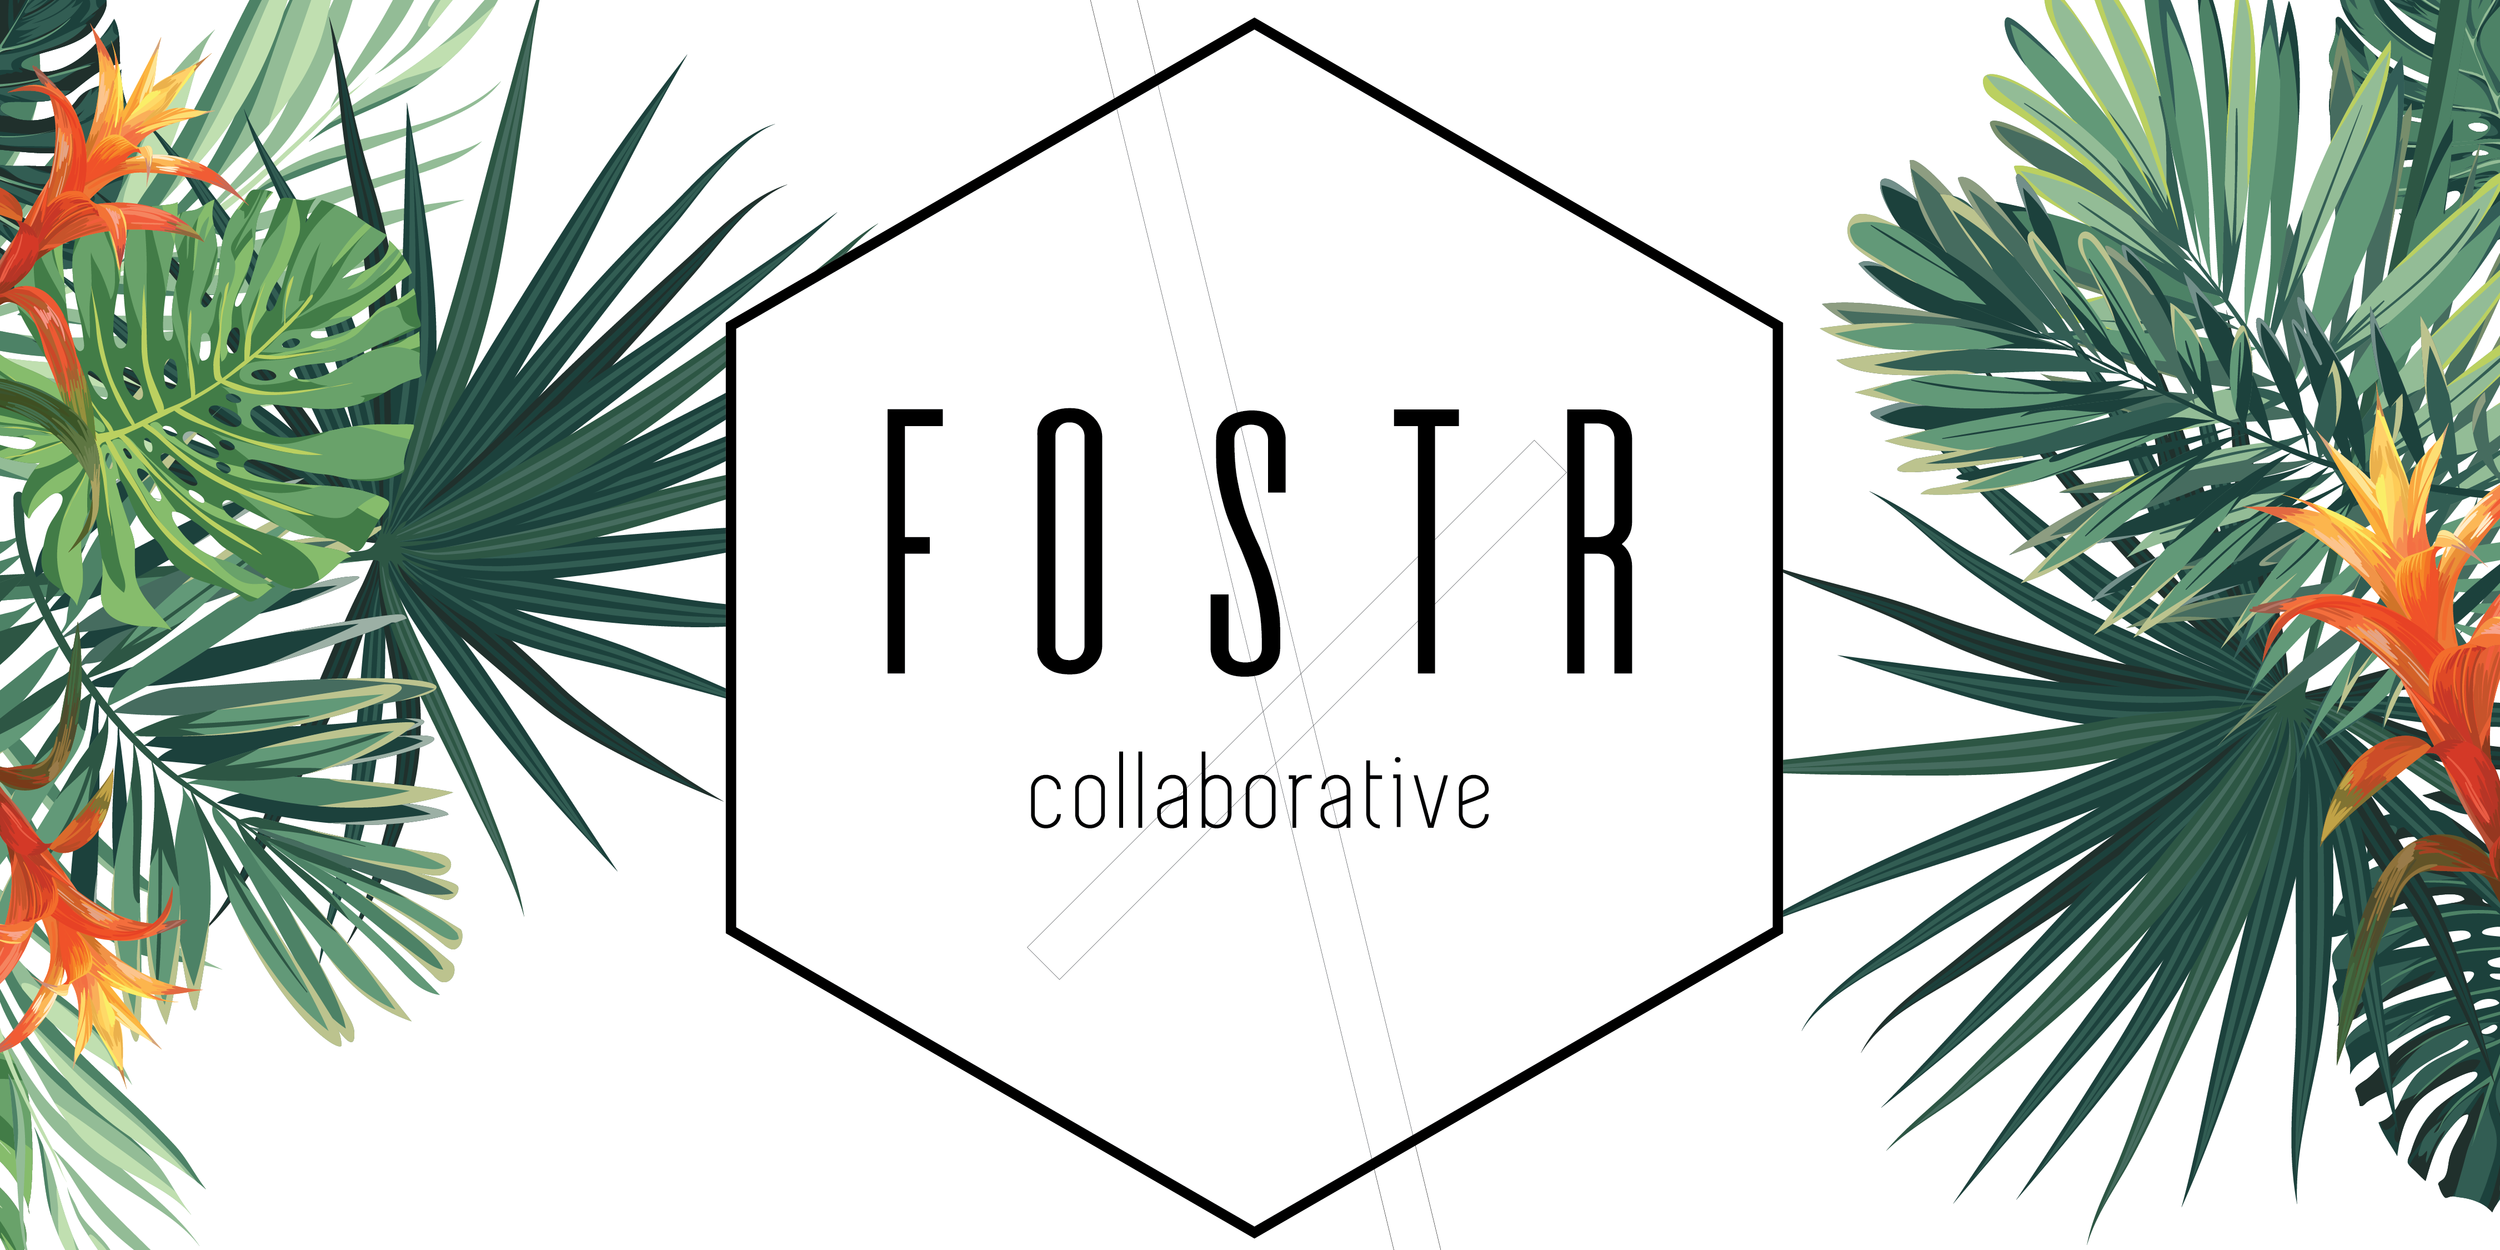 fostr_workshop_graphics-03.png